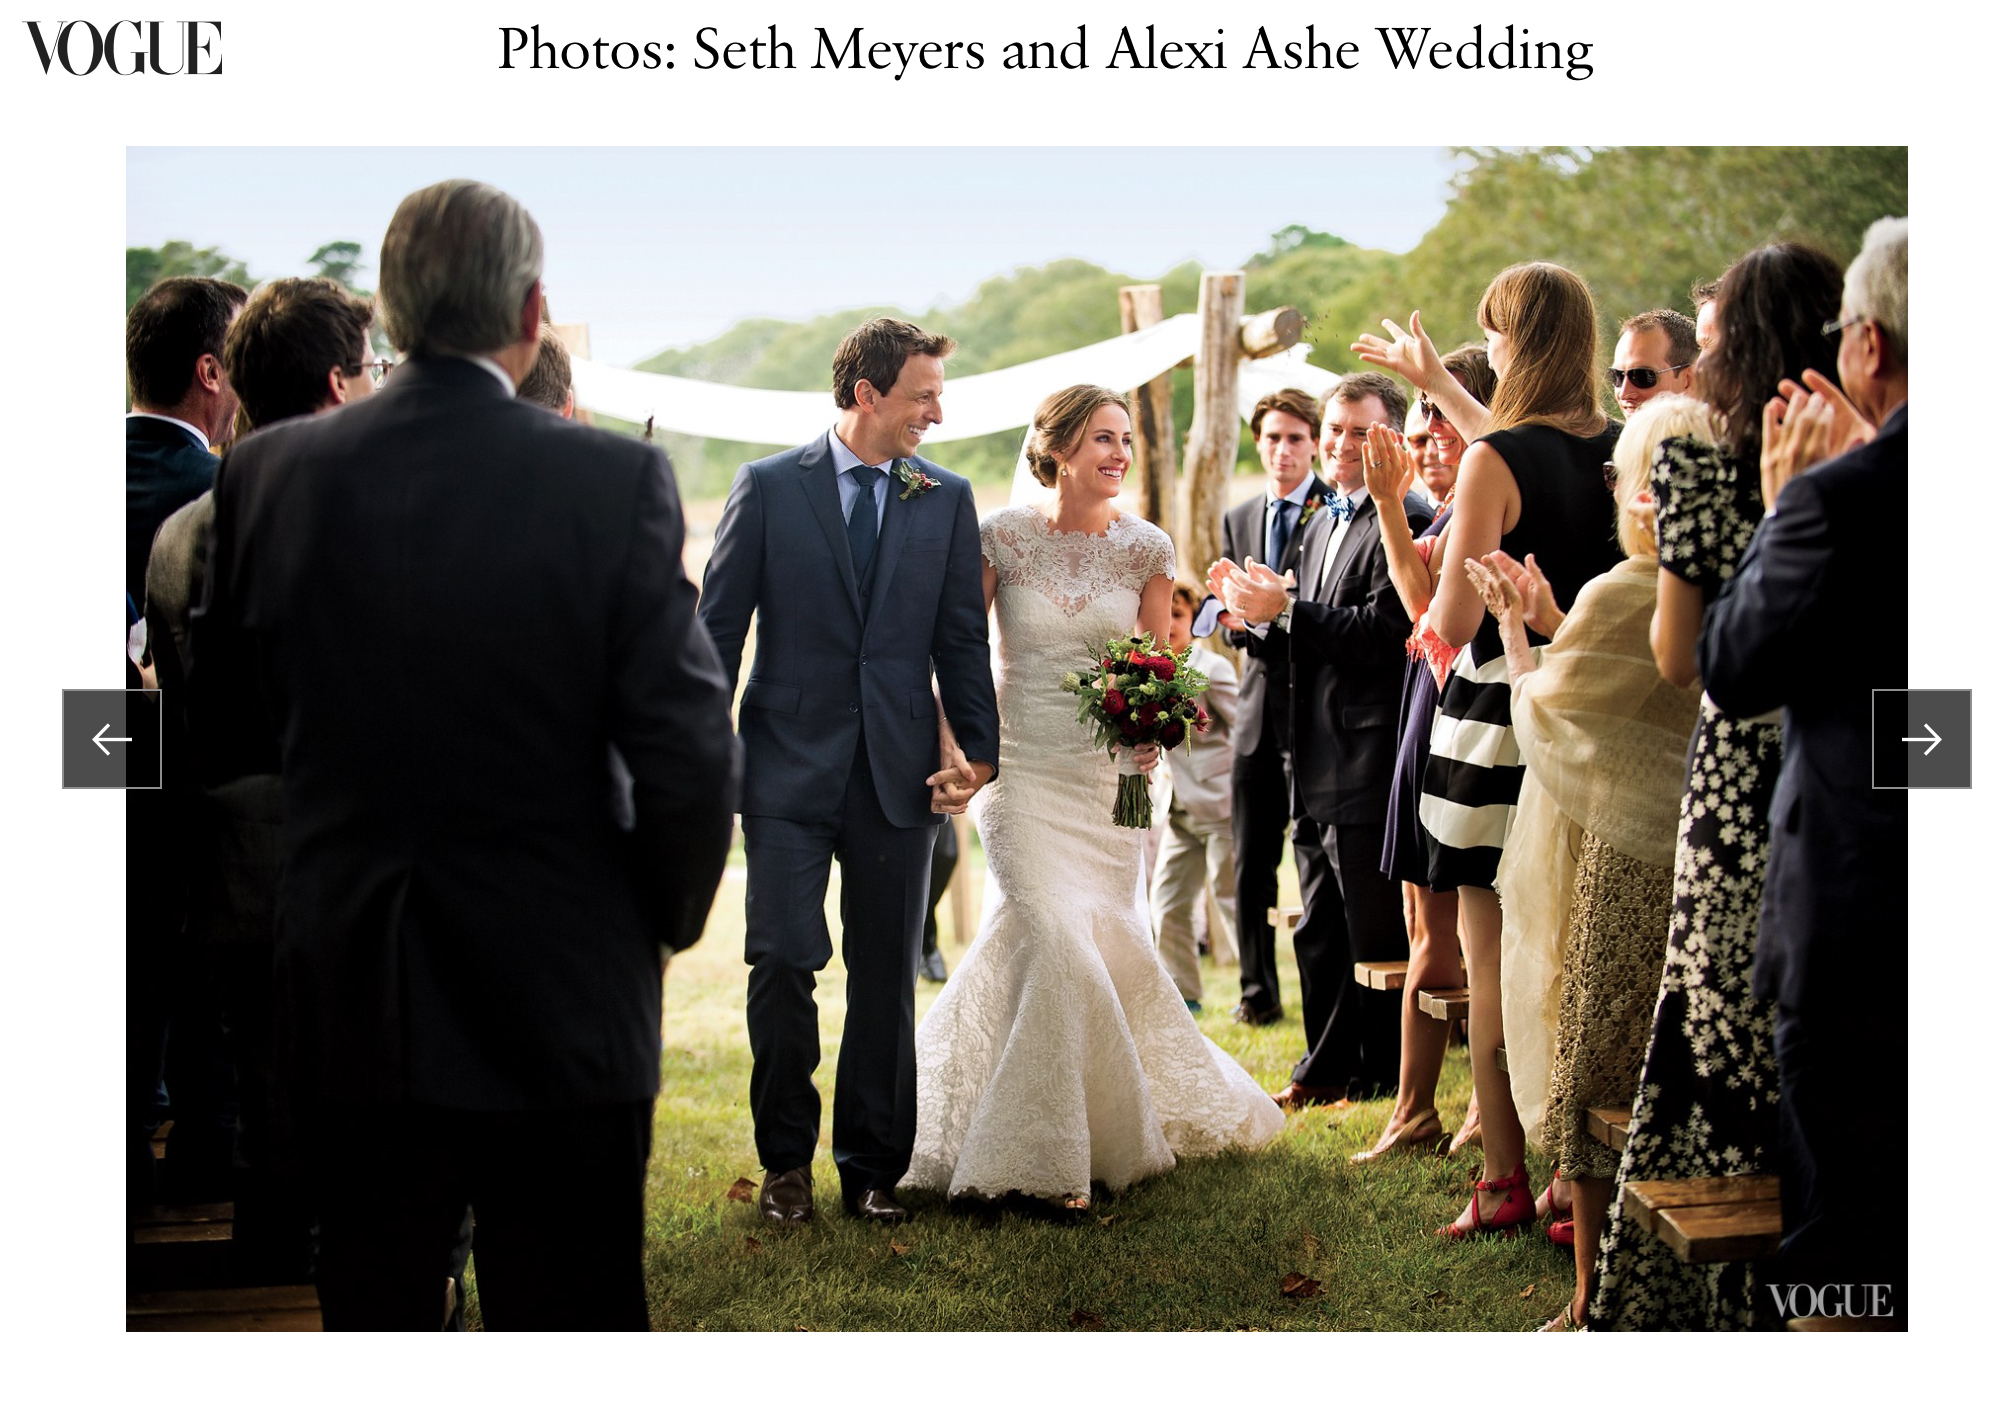 Seth & Alexi - Comedian Seth Meyers married Alexi Ashe married in a rustic ceremony on Martha's Vineyard. A spread of our images from this beautiful wedding appeared in Vogue Magazine. You can see the story here.